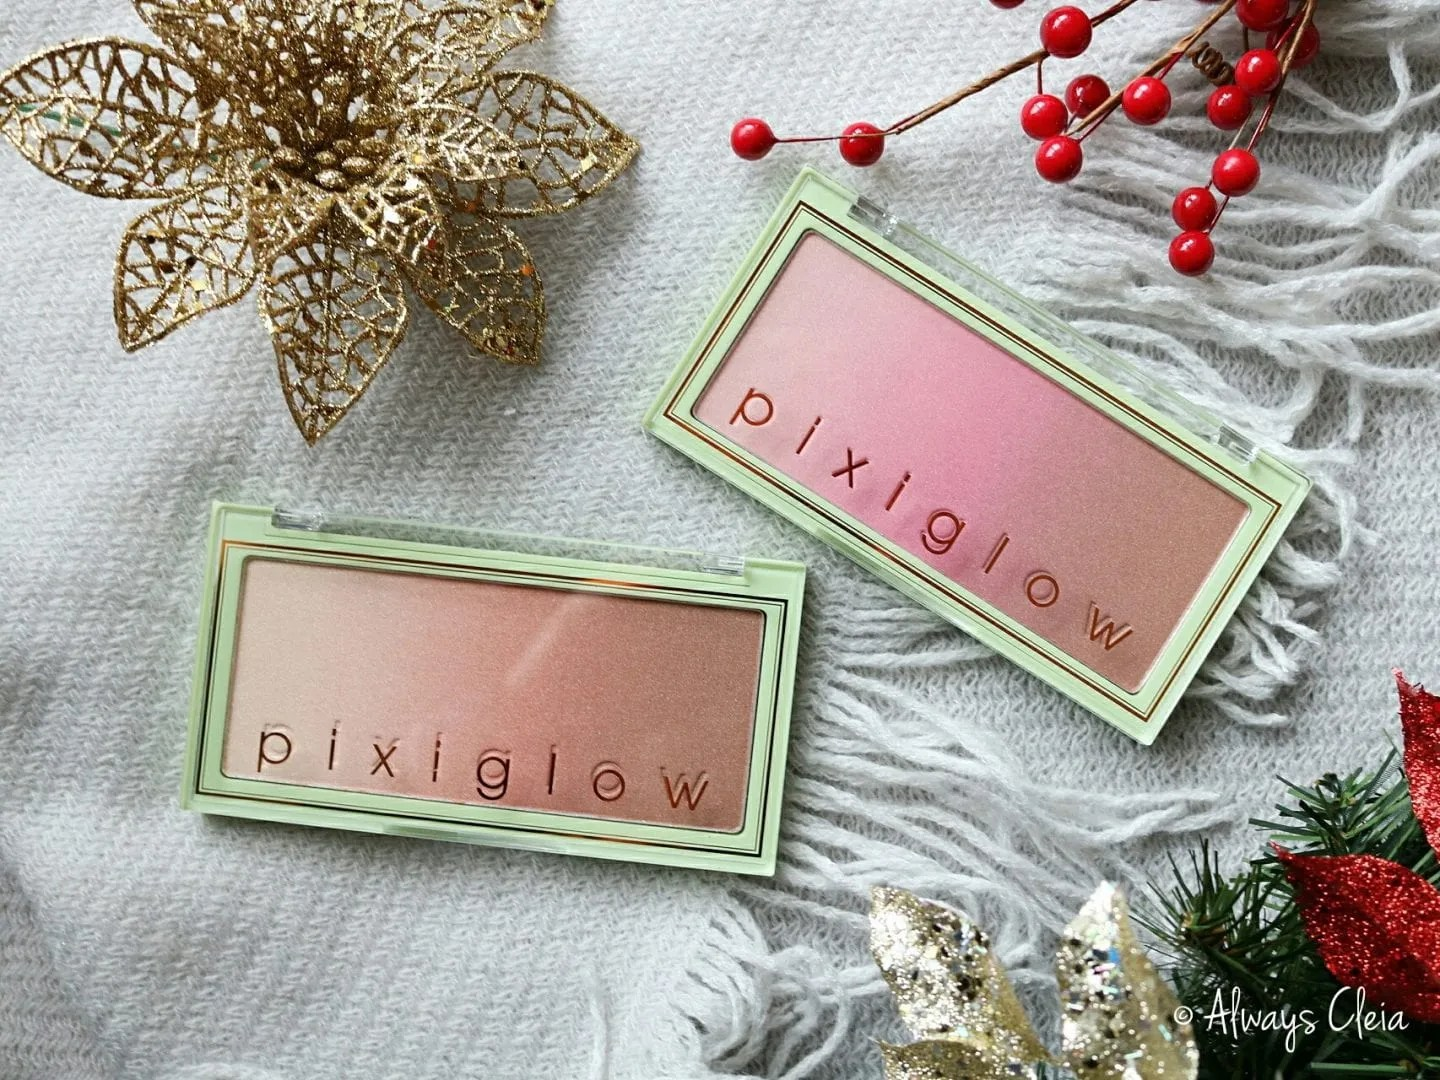 Pixi Beauty Pixiglow Cakes Review